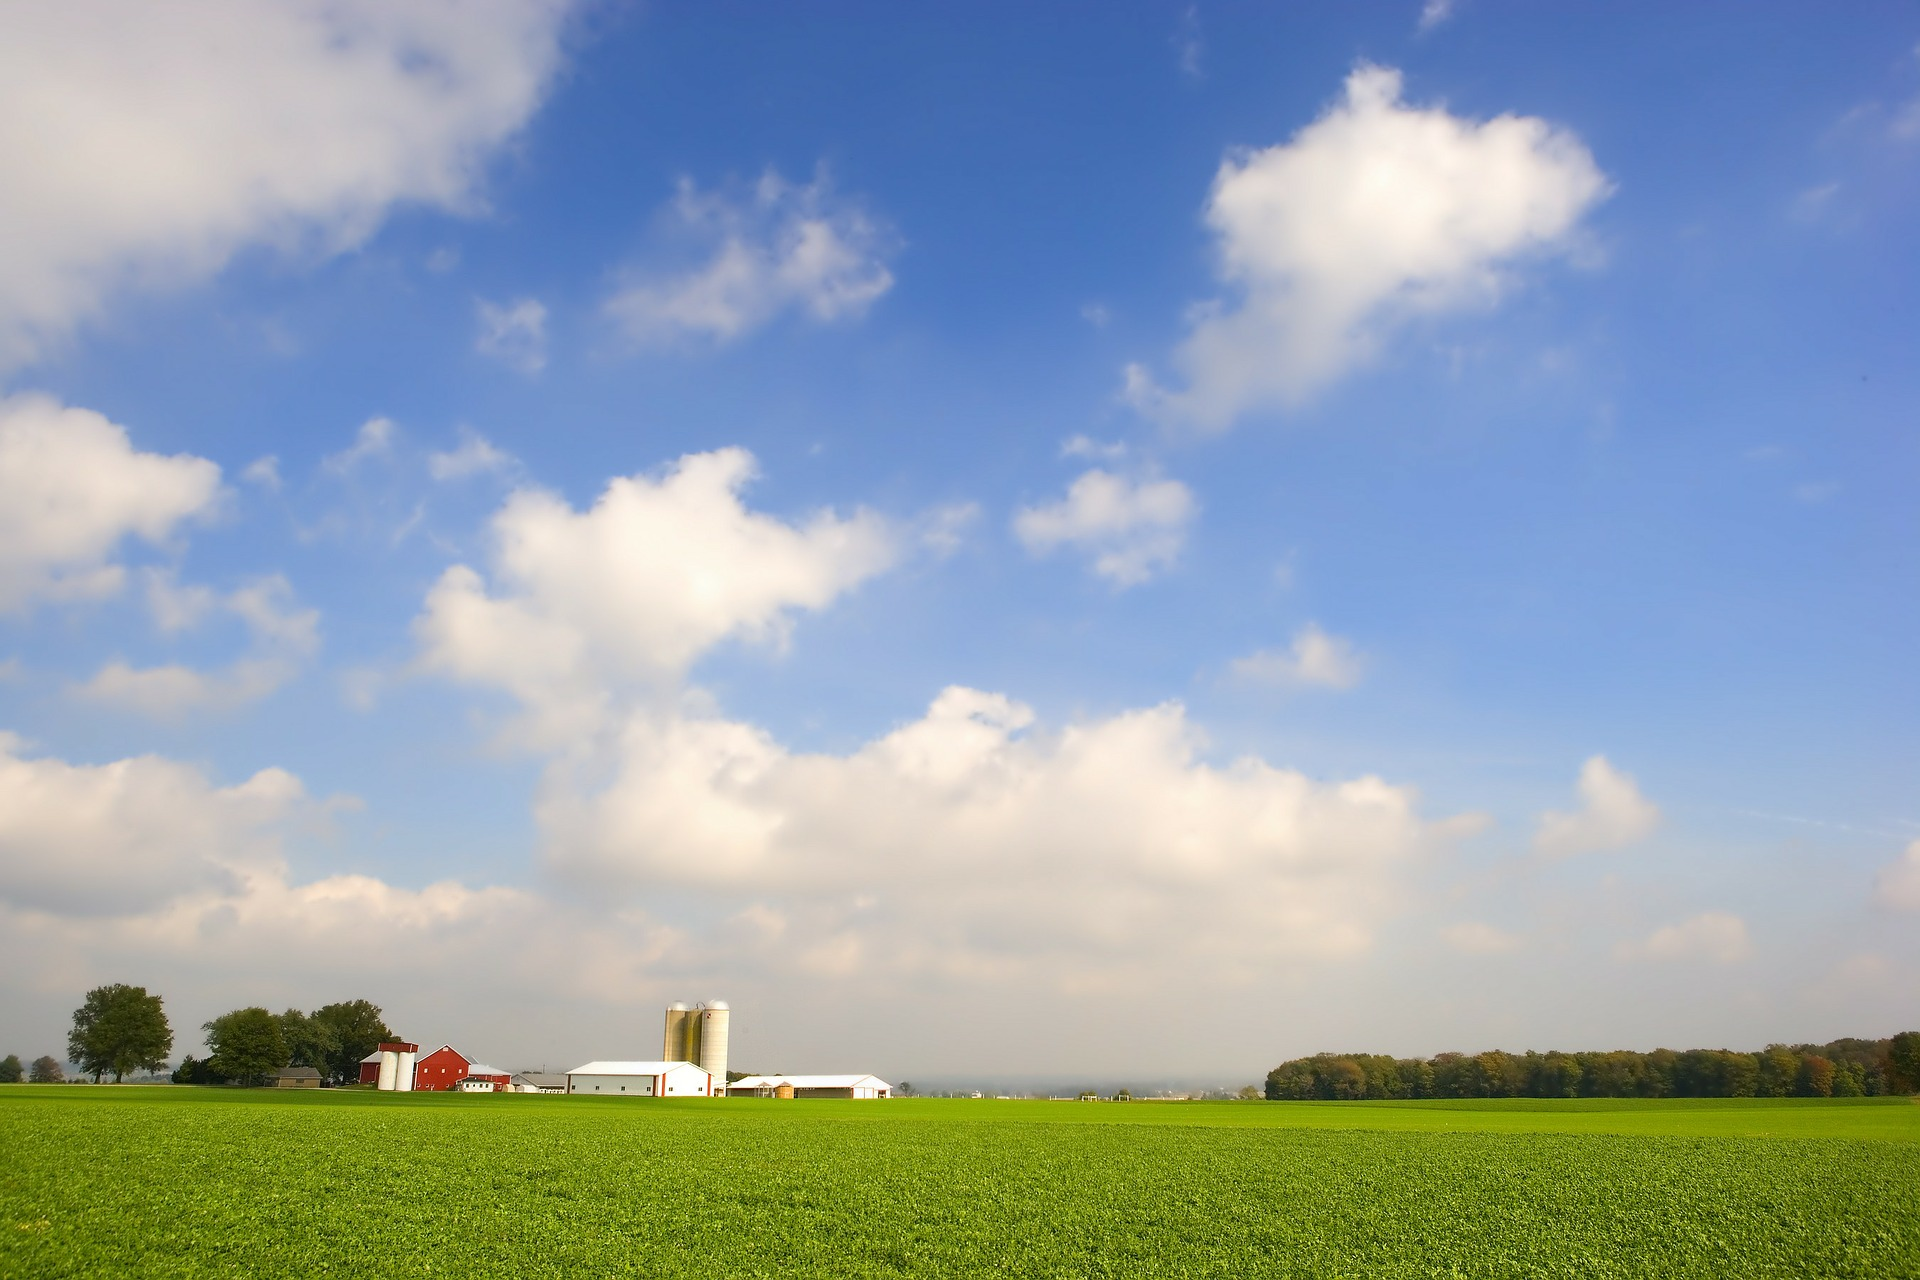 a renewable resource - Farmers can produce soy crops repeatedly, ensuring that soy wax can be produced for generations.